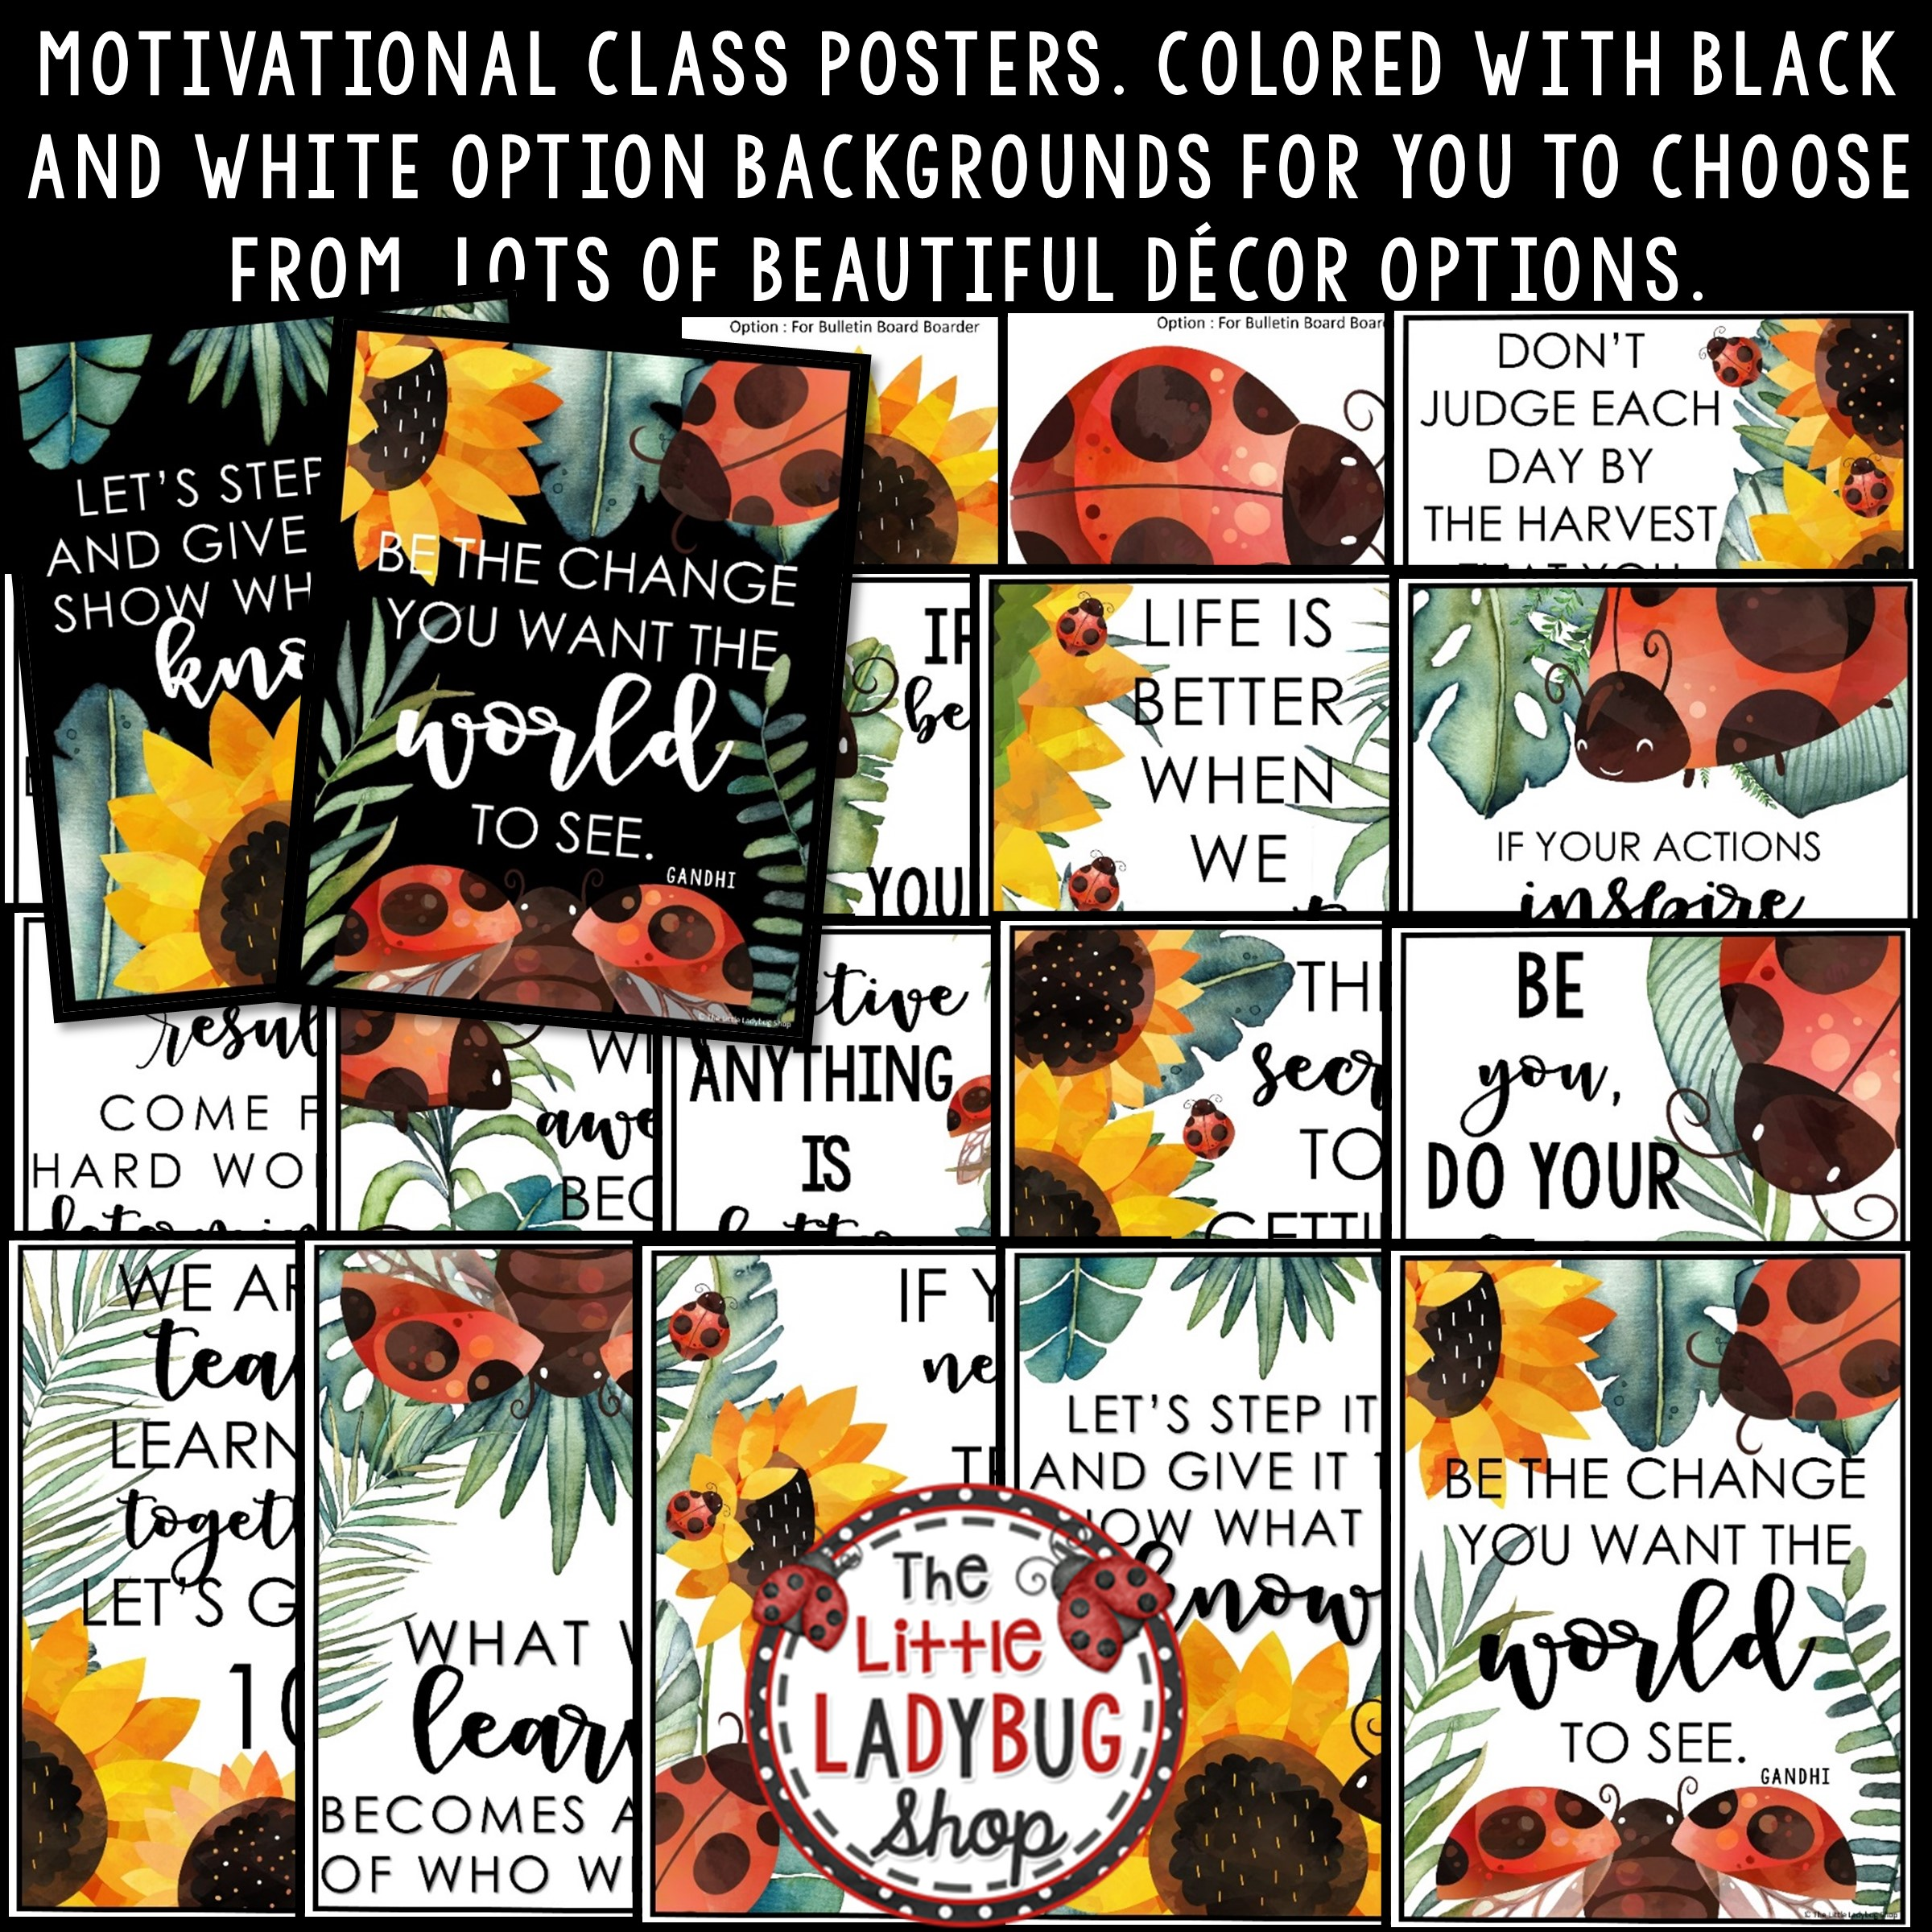 Ladybug Sunflower Classroom Decor Motivational Posters Bulletin Board The Little Ladybug Shop